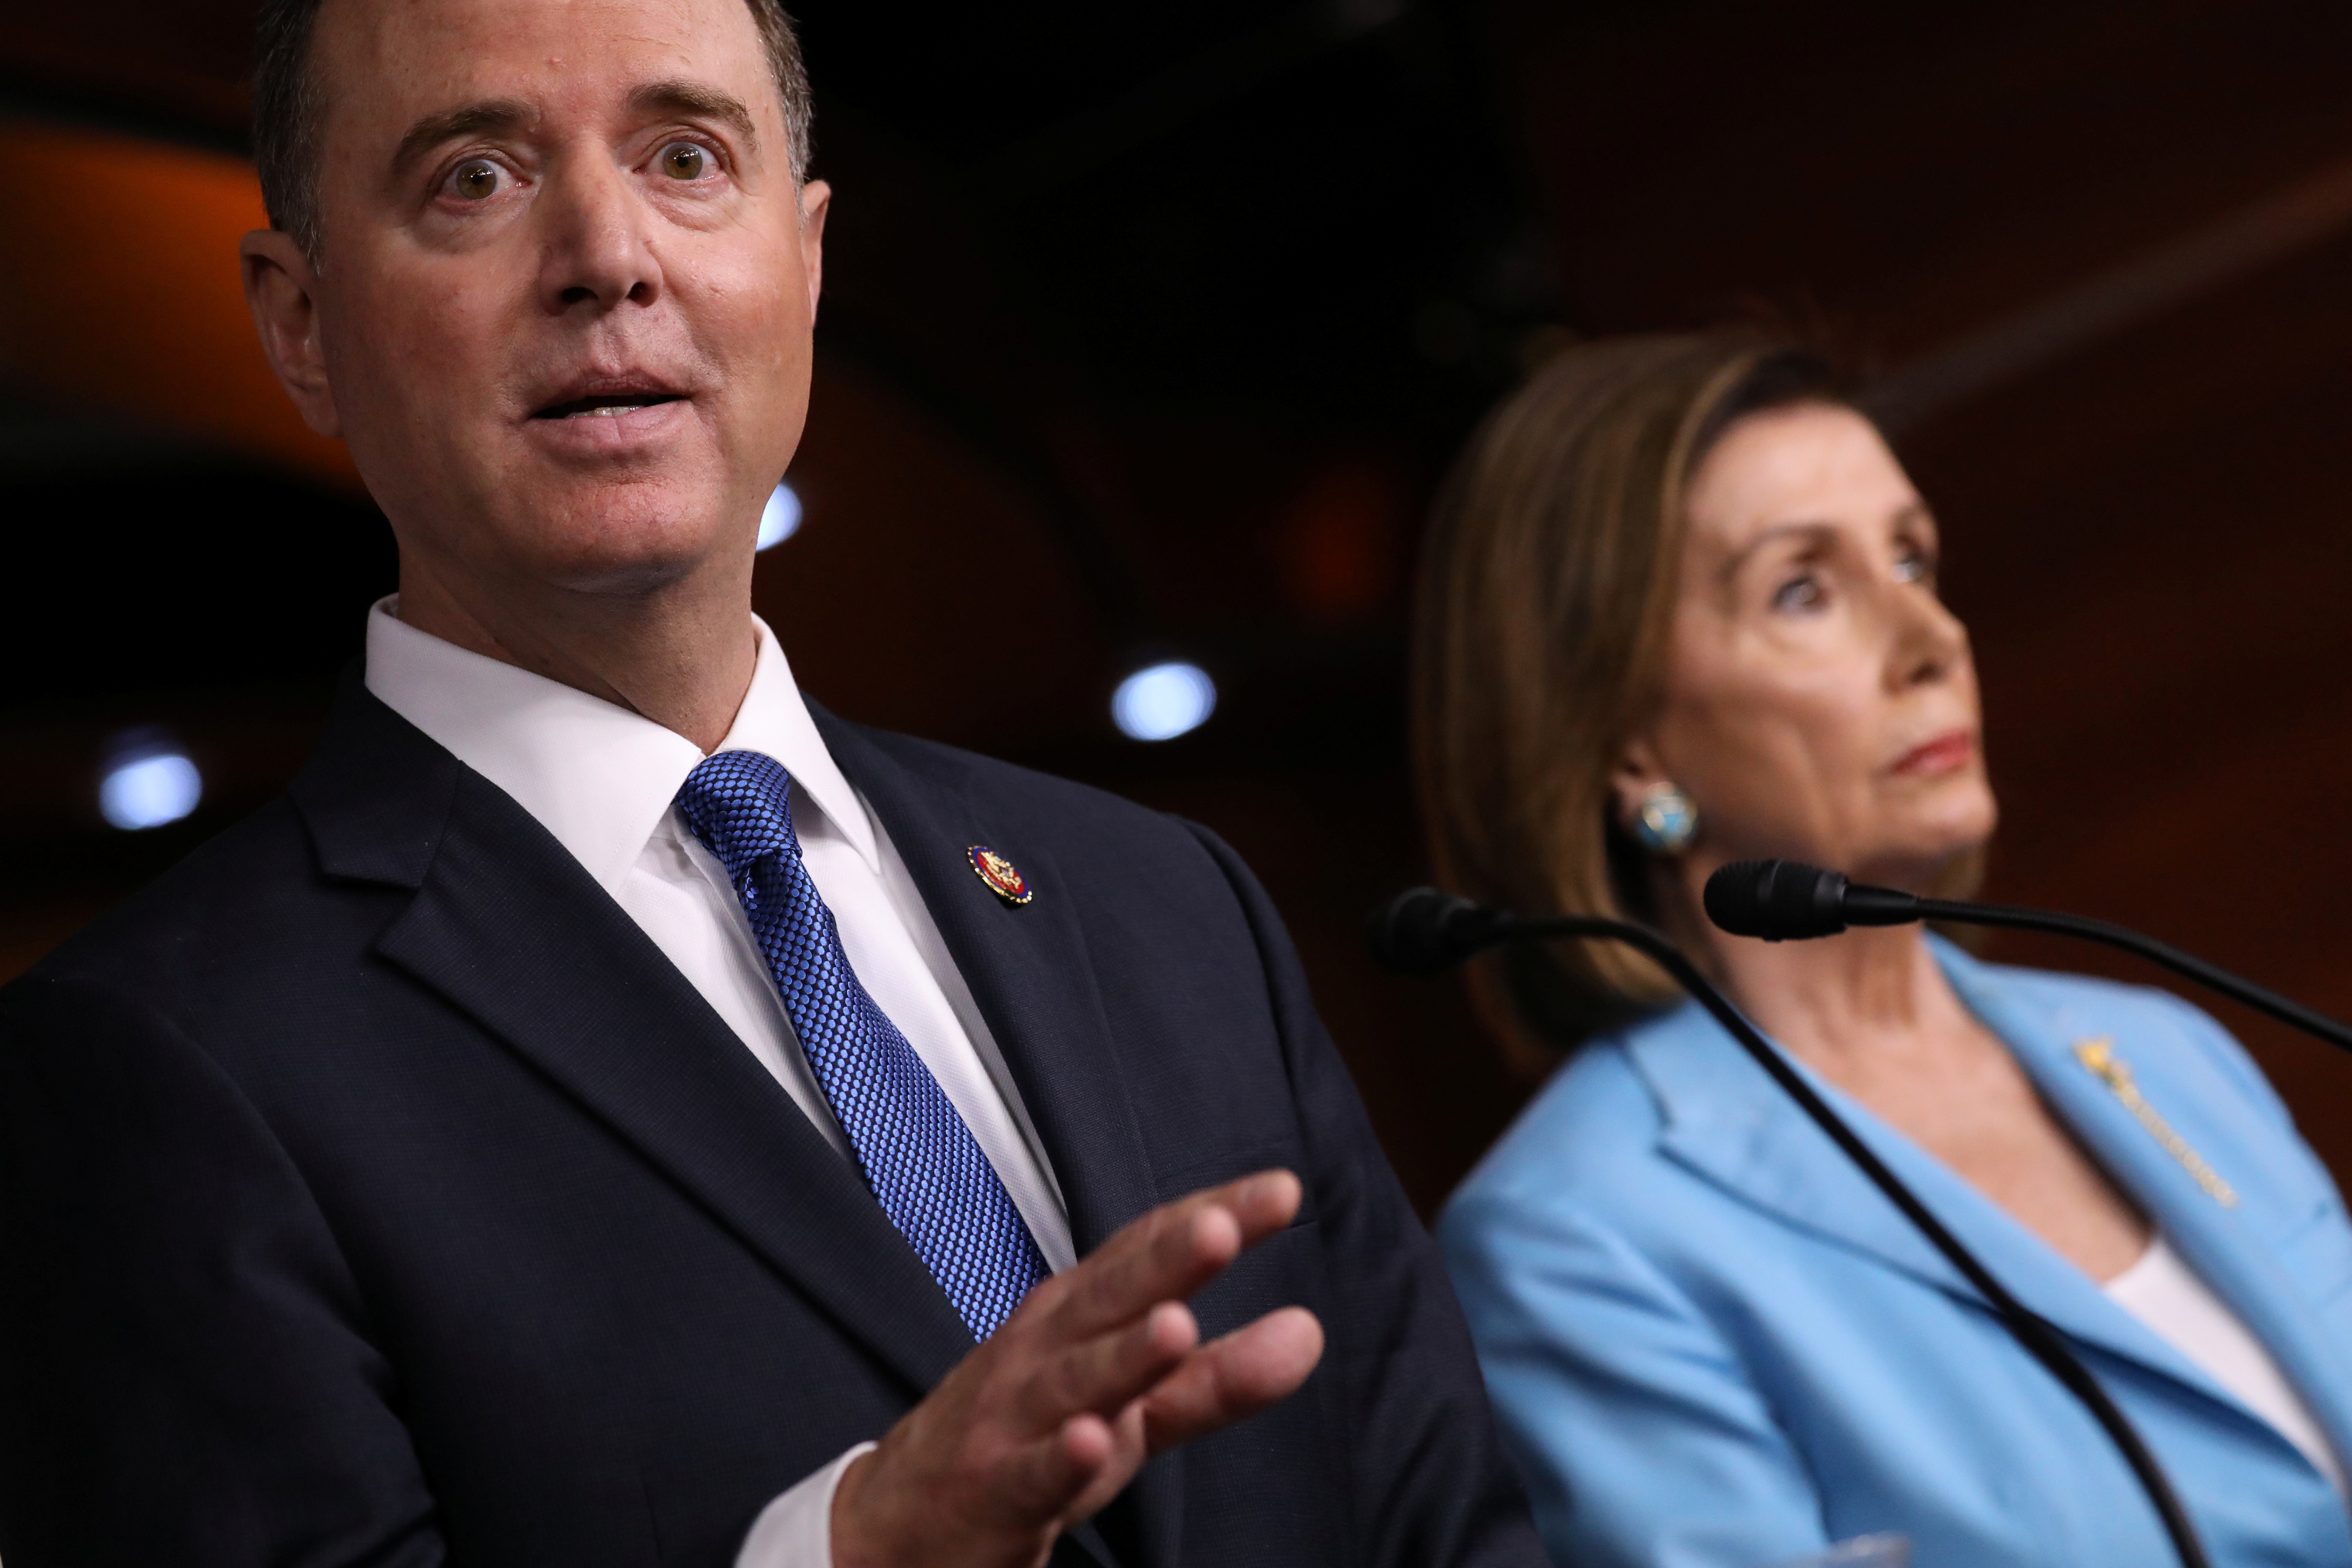 U.S. House Intelligence Committee Chairman Adam Schiff (D-CA) joins Speaker of the House Nancy Pelosi to speak about Democratic legislative priorities and impeachment inquiry plans during her weekly news conference at the U.S. Capitol in Washington, U.S., October 2, 2019. REUTERS/Jonathan Ernst